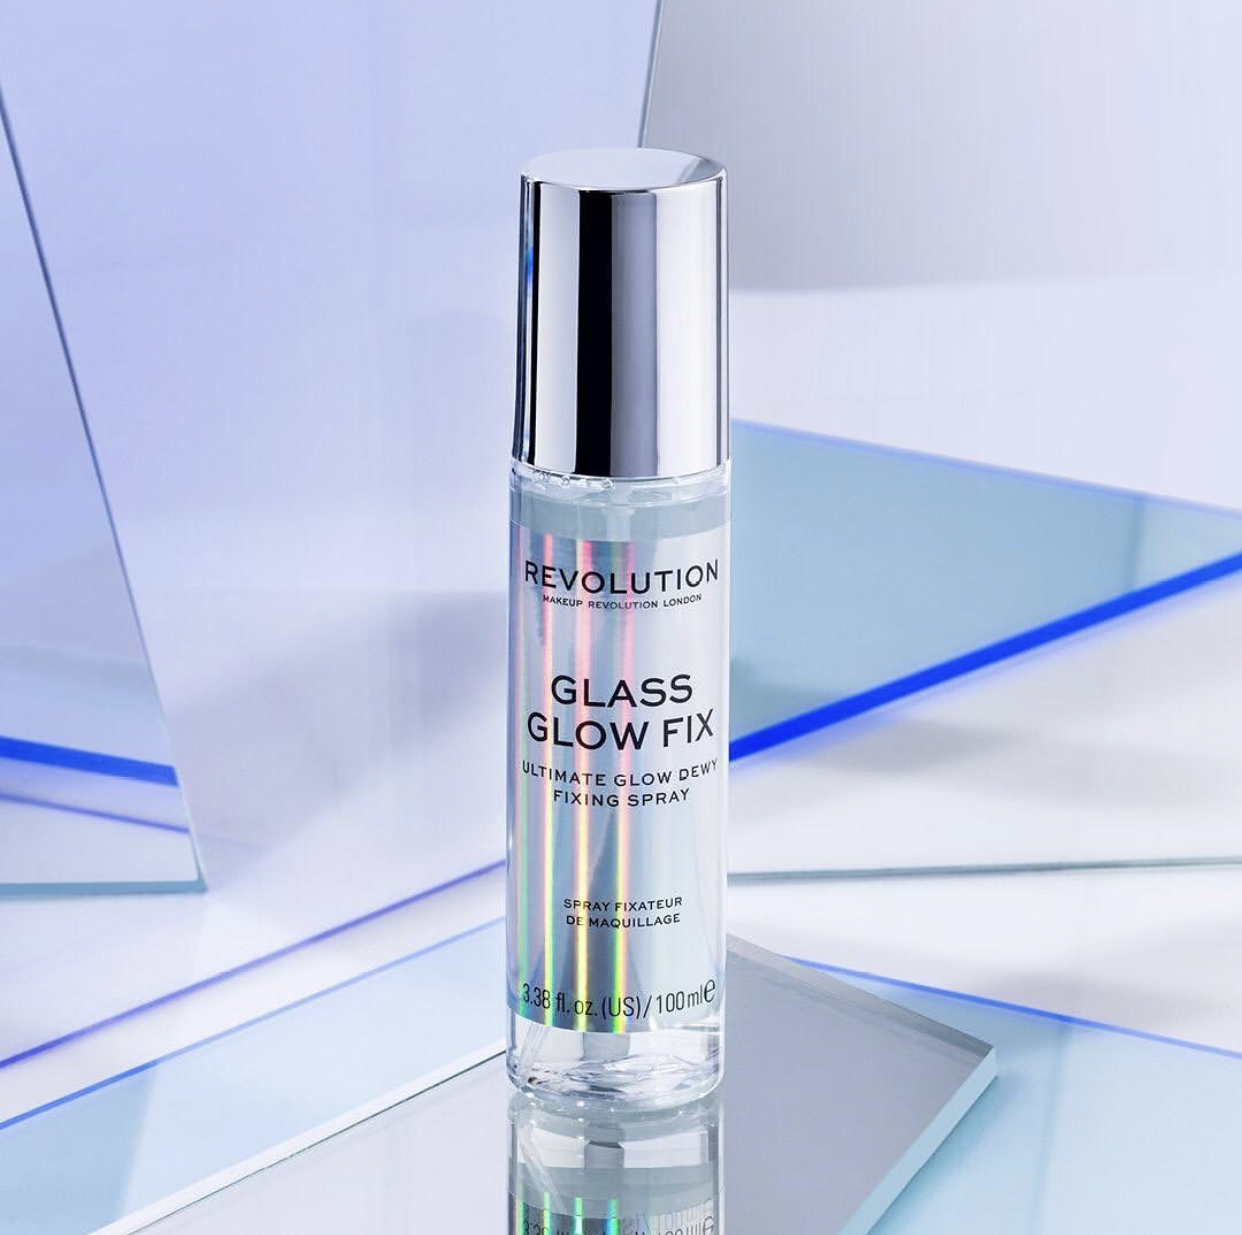 Revolution Glass Glow Fix Dewy Fixing Spray